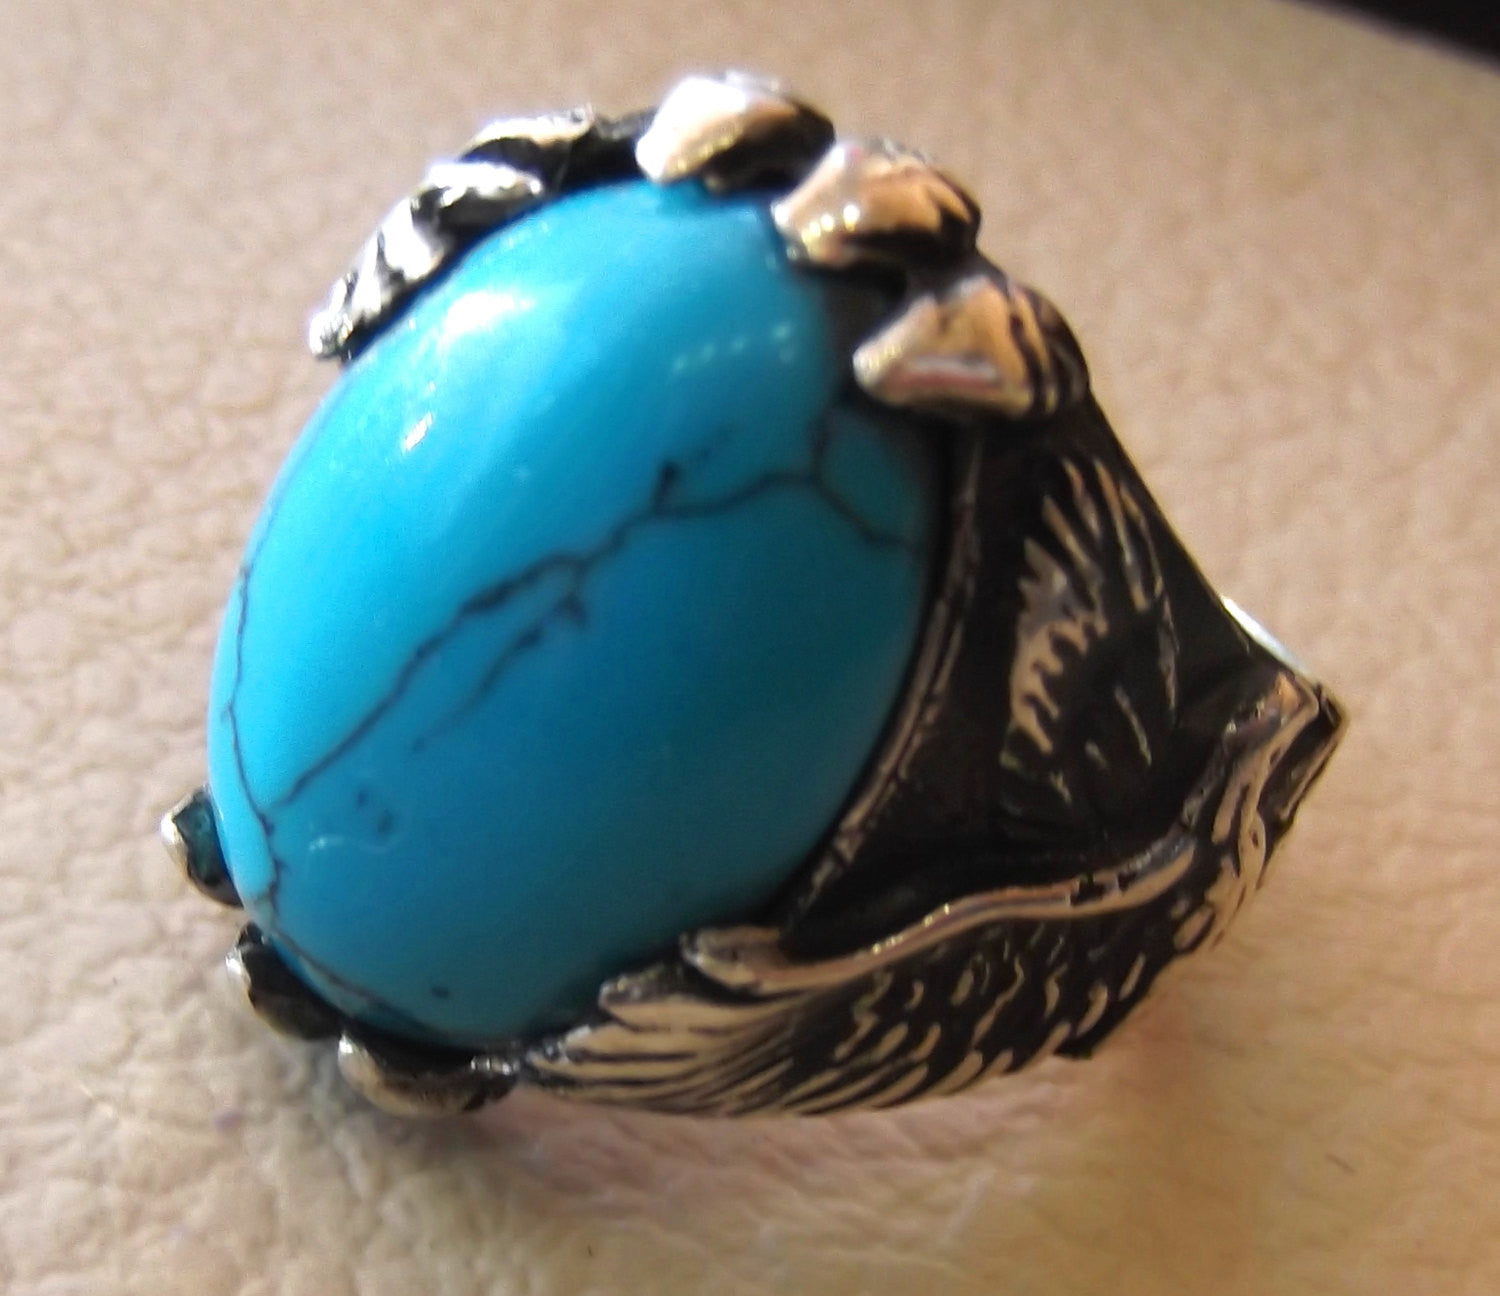 blue turquoise cabochon stone sterling silver 925 men ring vintage eagle style  animal jewelry oval stone all sizes fast shipping